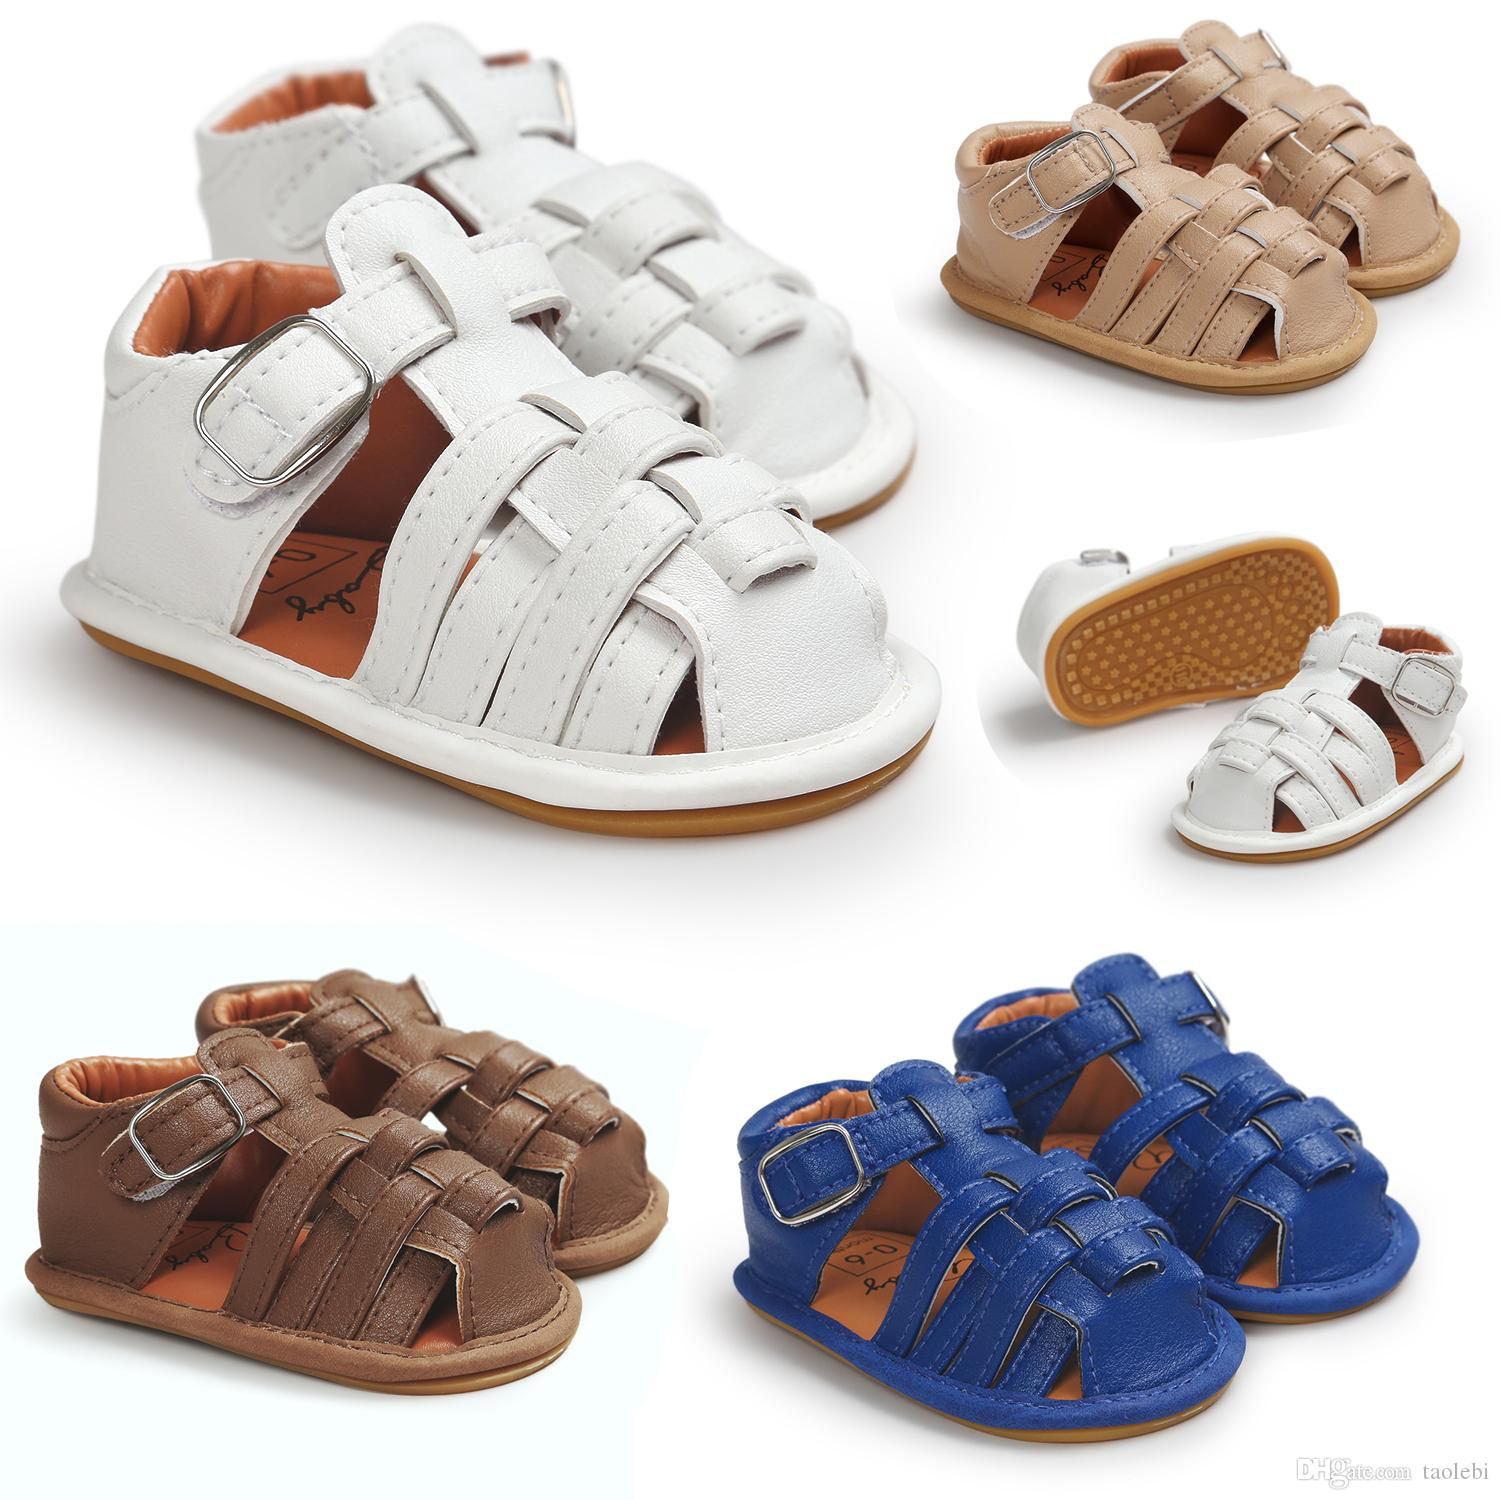 3 pairs/lot(many styles for choose) Summer prewalker shoes Baby boy sandals fashion baby shoes Infant boys sandals